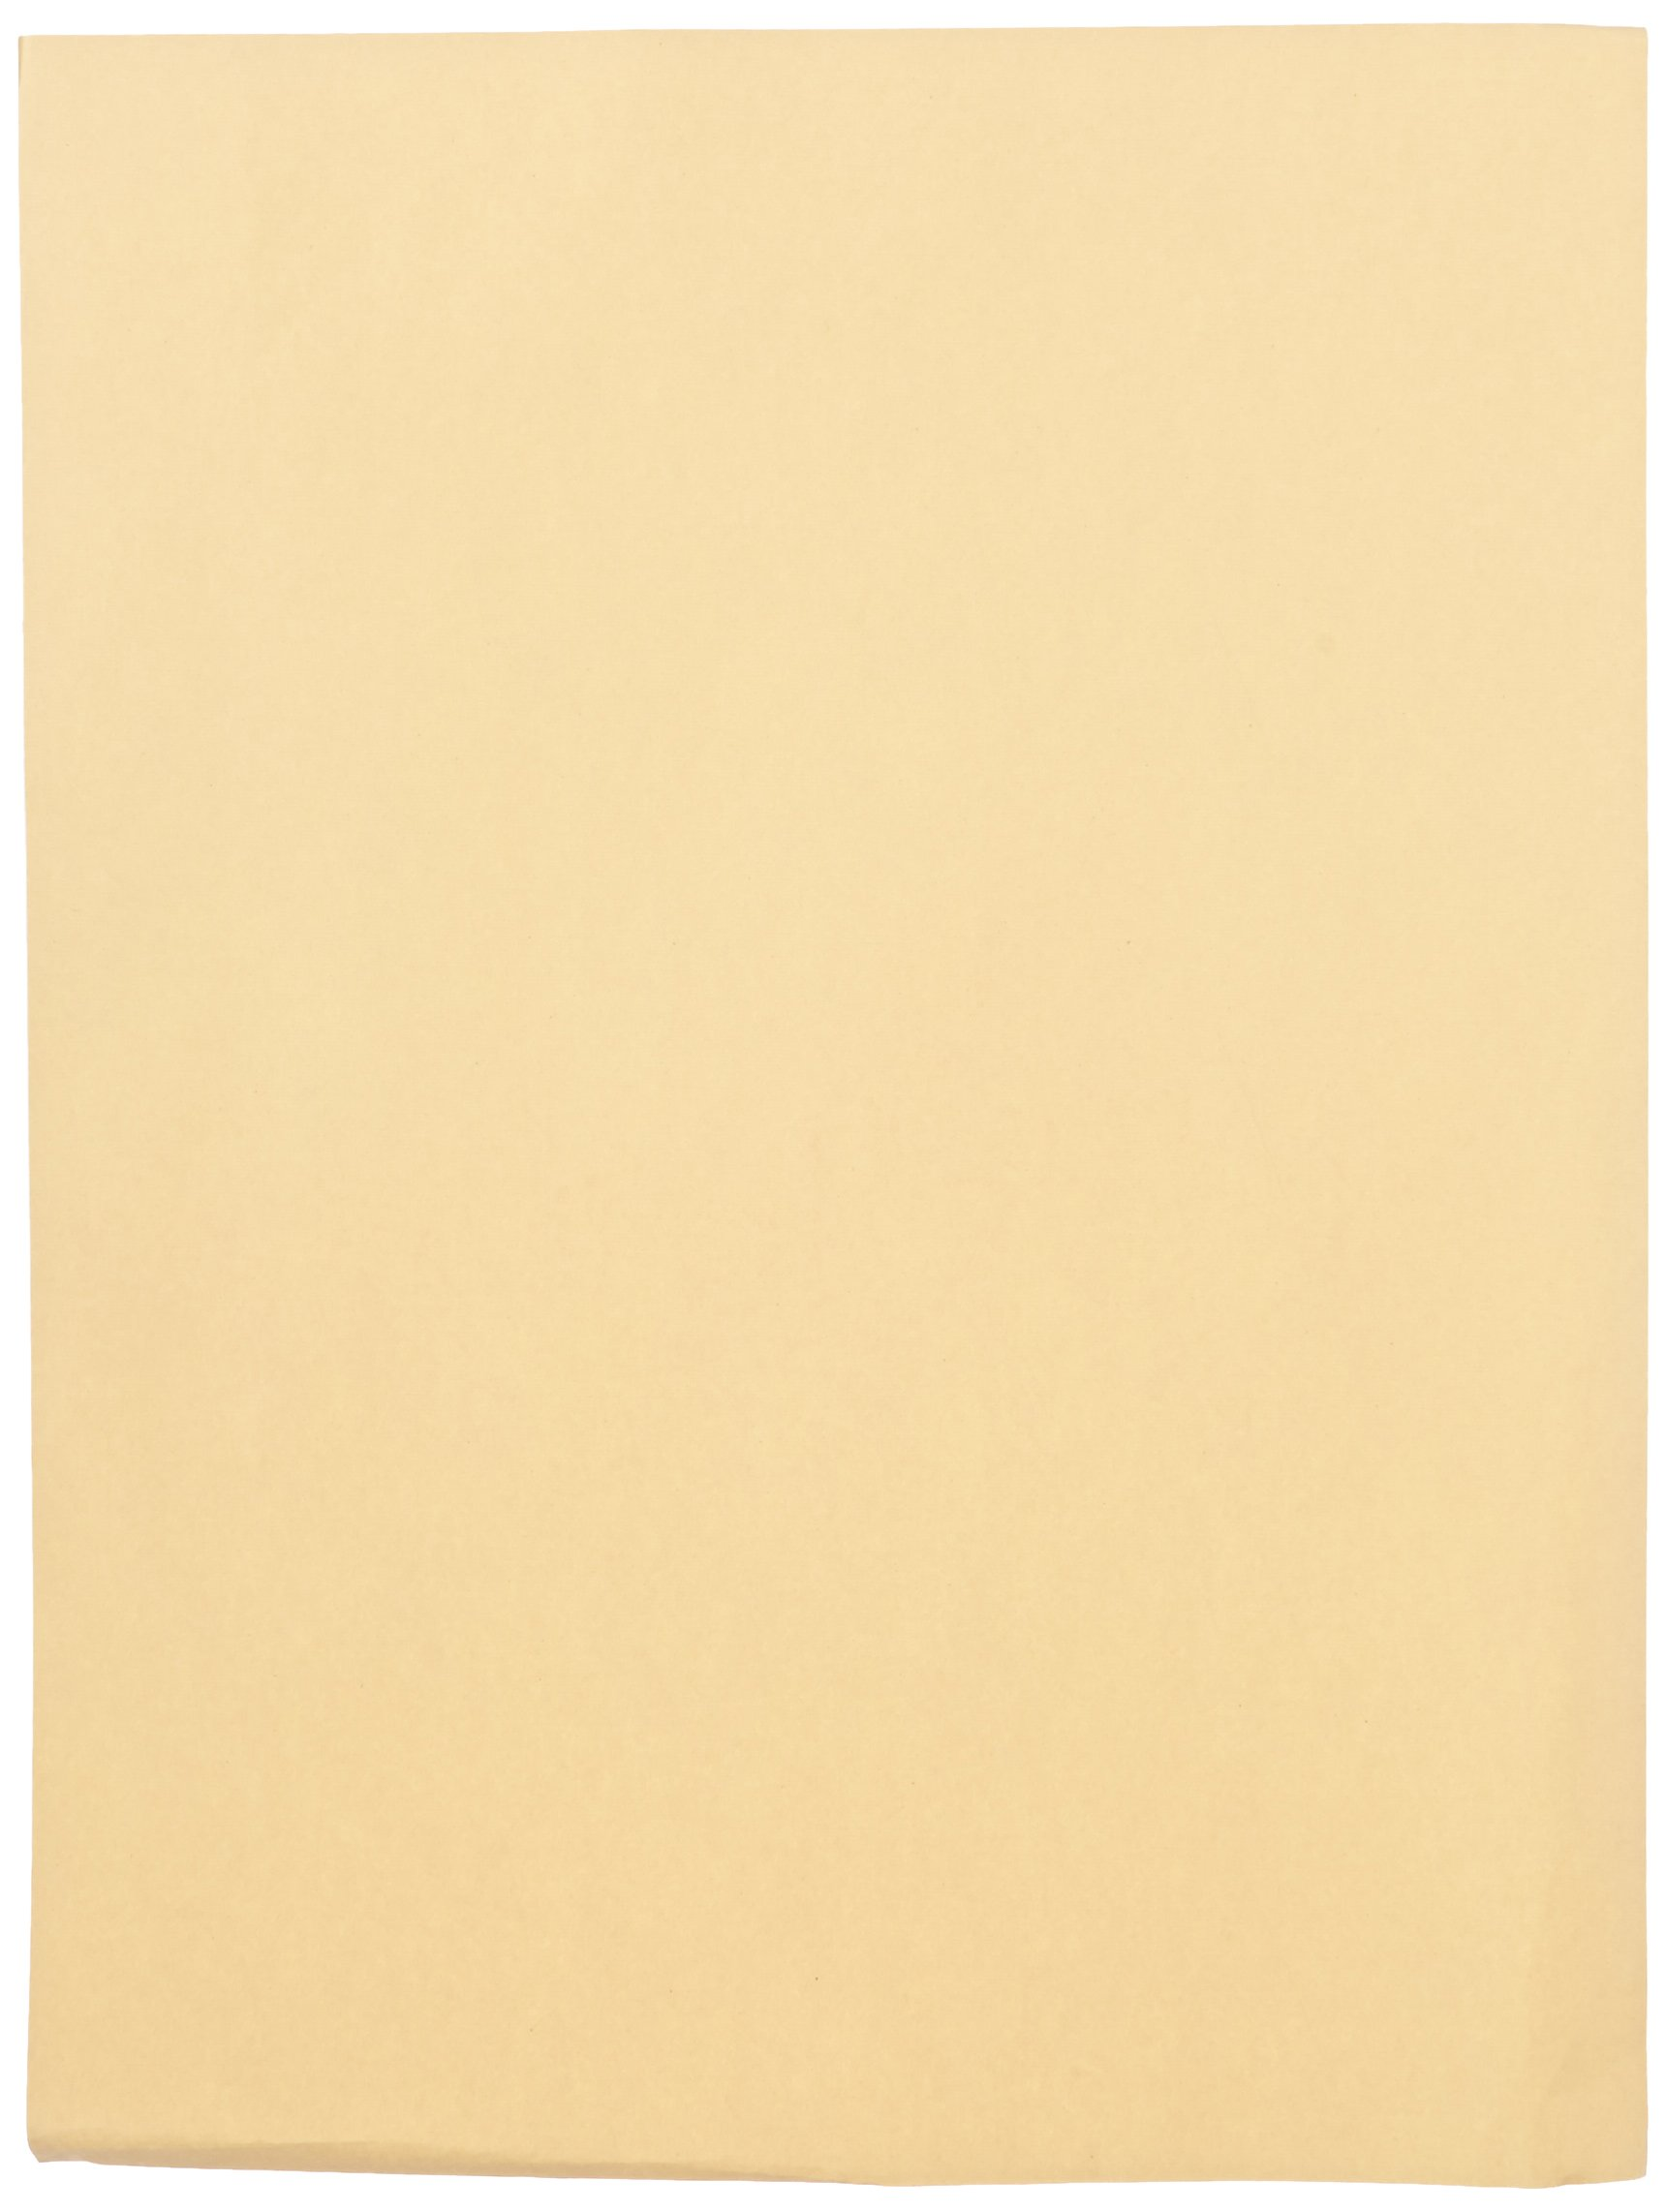 Sax Manila Drawing Paper, 60 Lb., 18 x 24 Inches, Pack of 500 by Sax